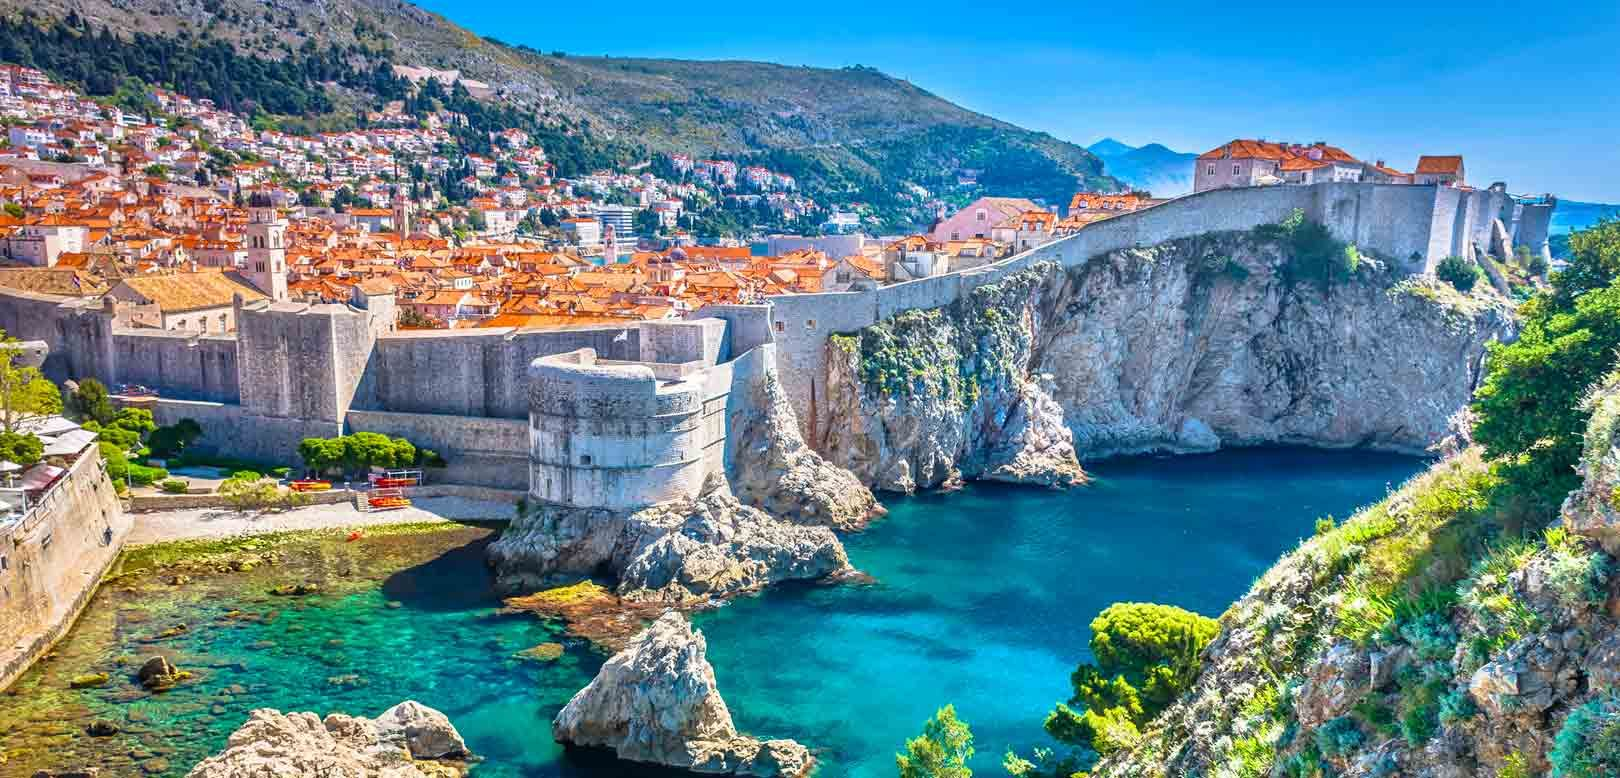 Top Best Things To Do In Dubrovnik Croatia I Am Aileen Best Hotels In Dubrovnik Croatia Dubrovnik